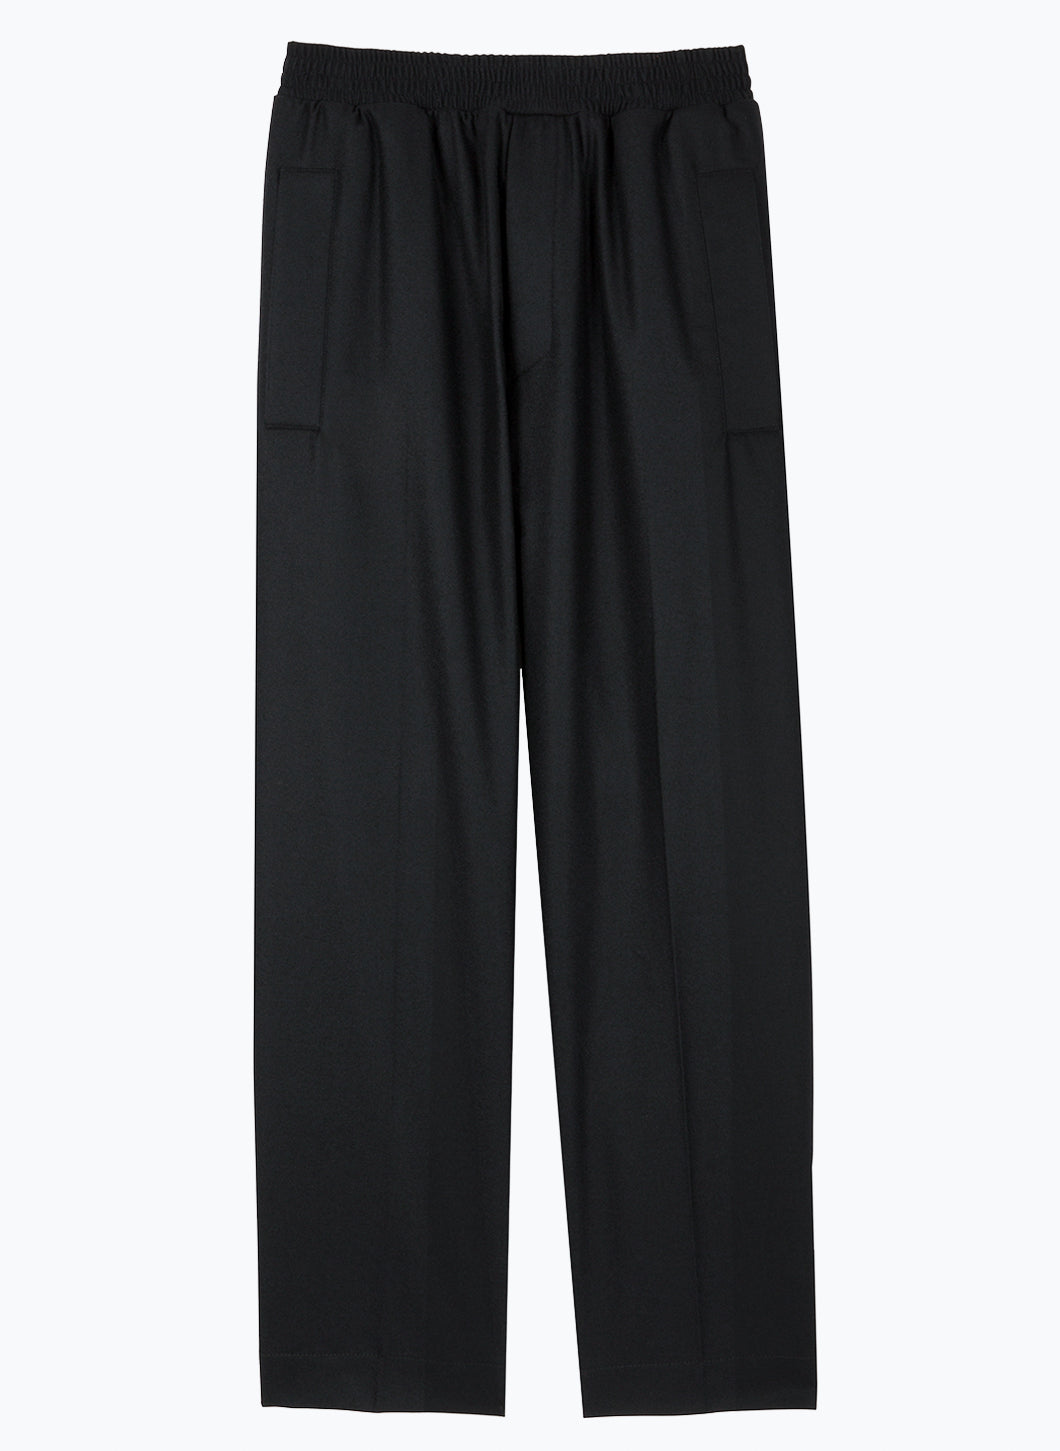 Pants with Large Elastic Waist in Black Flannel Wool